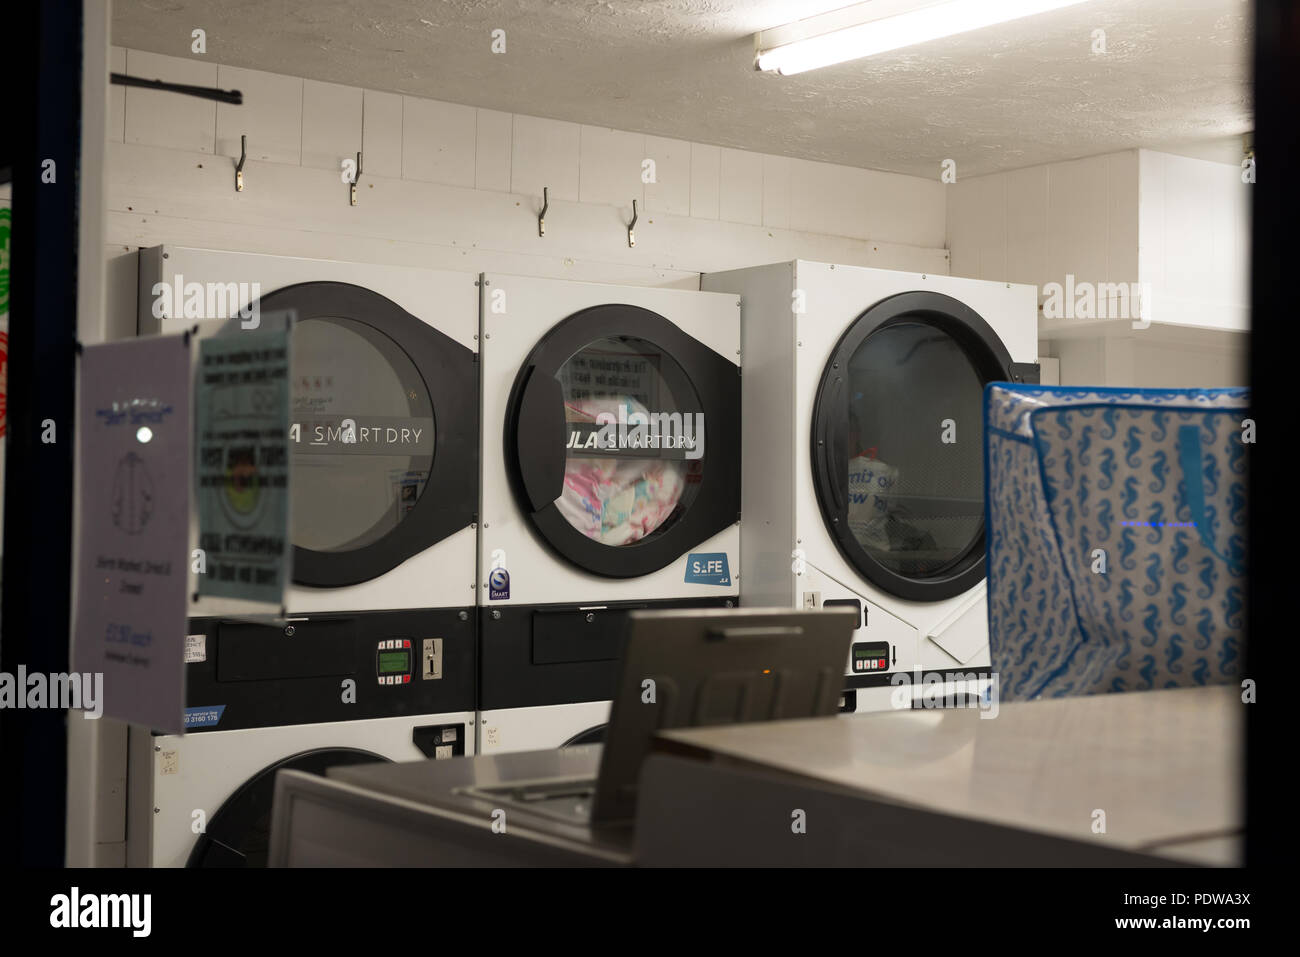 Laundrette, Chipper Lane, Salisbury, Wiltshire, England at night - Stock Image